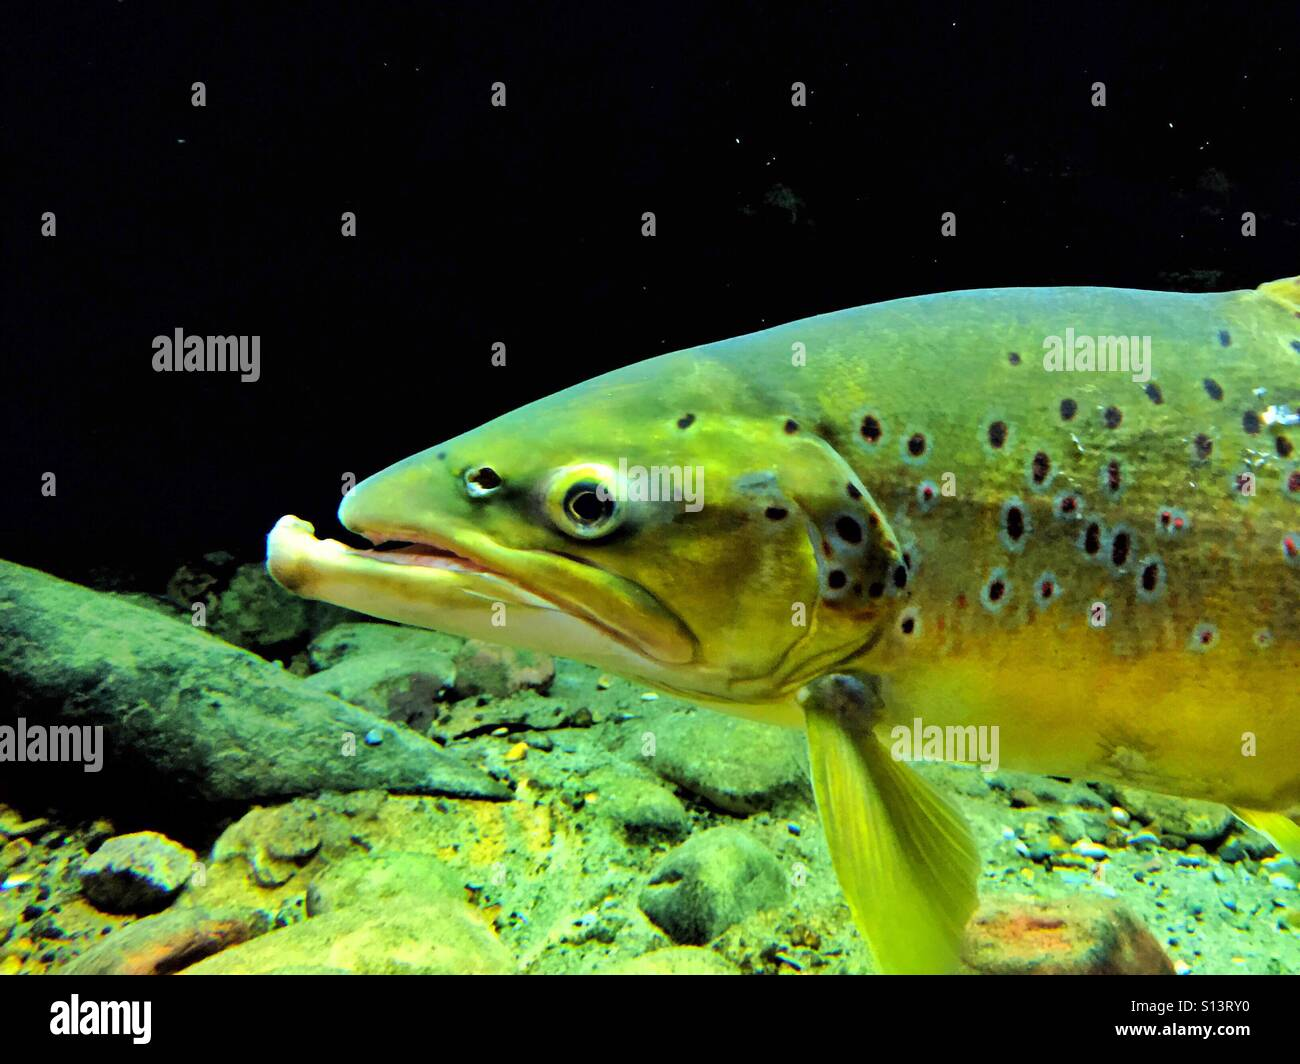 Brown trout with protruding lower jaw - Stock Image